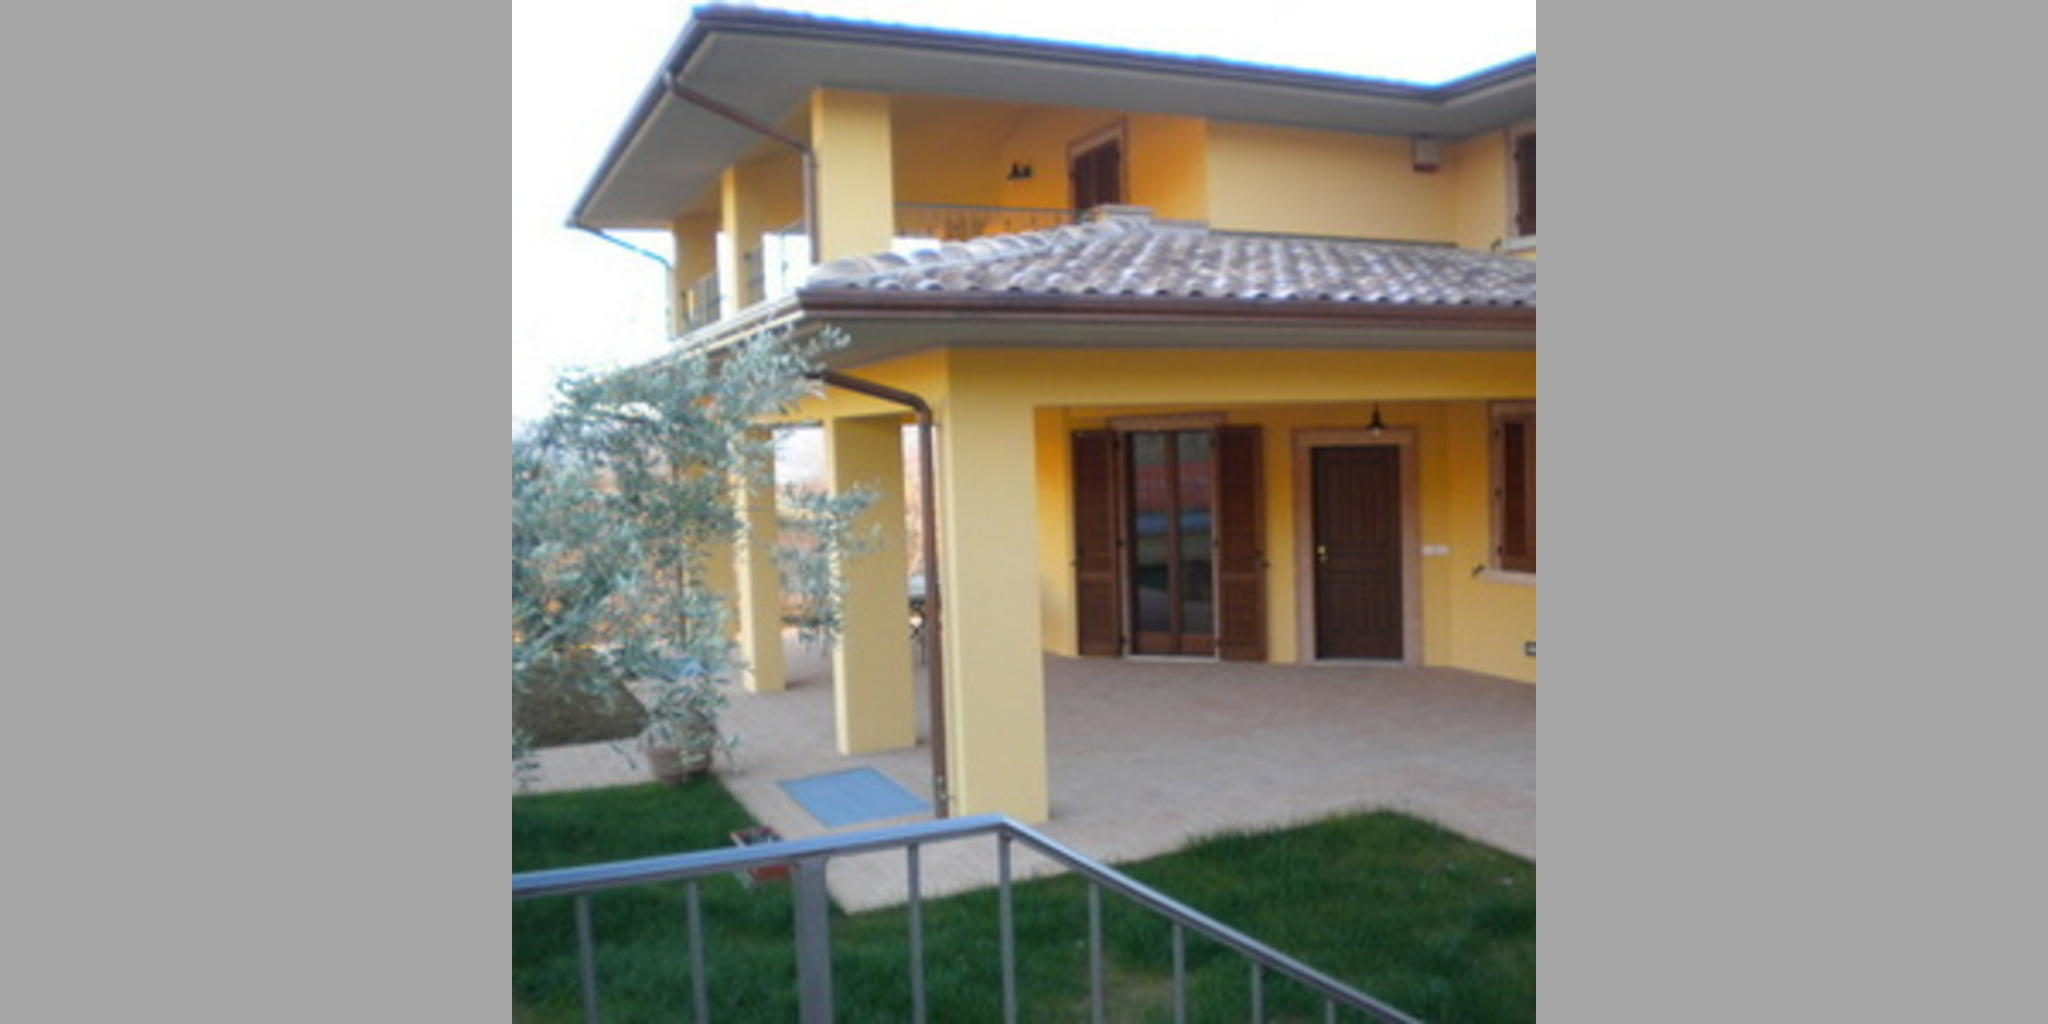 Bed & Breakfast Torgiano - Torgiano  Brufa